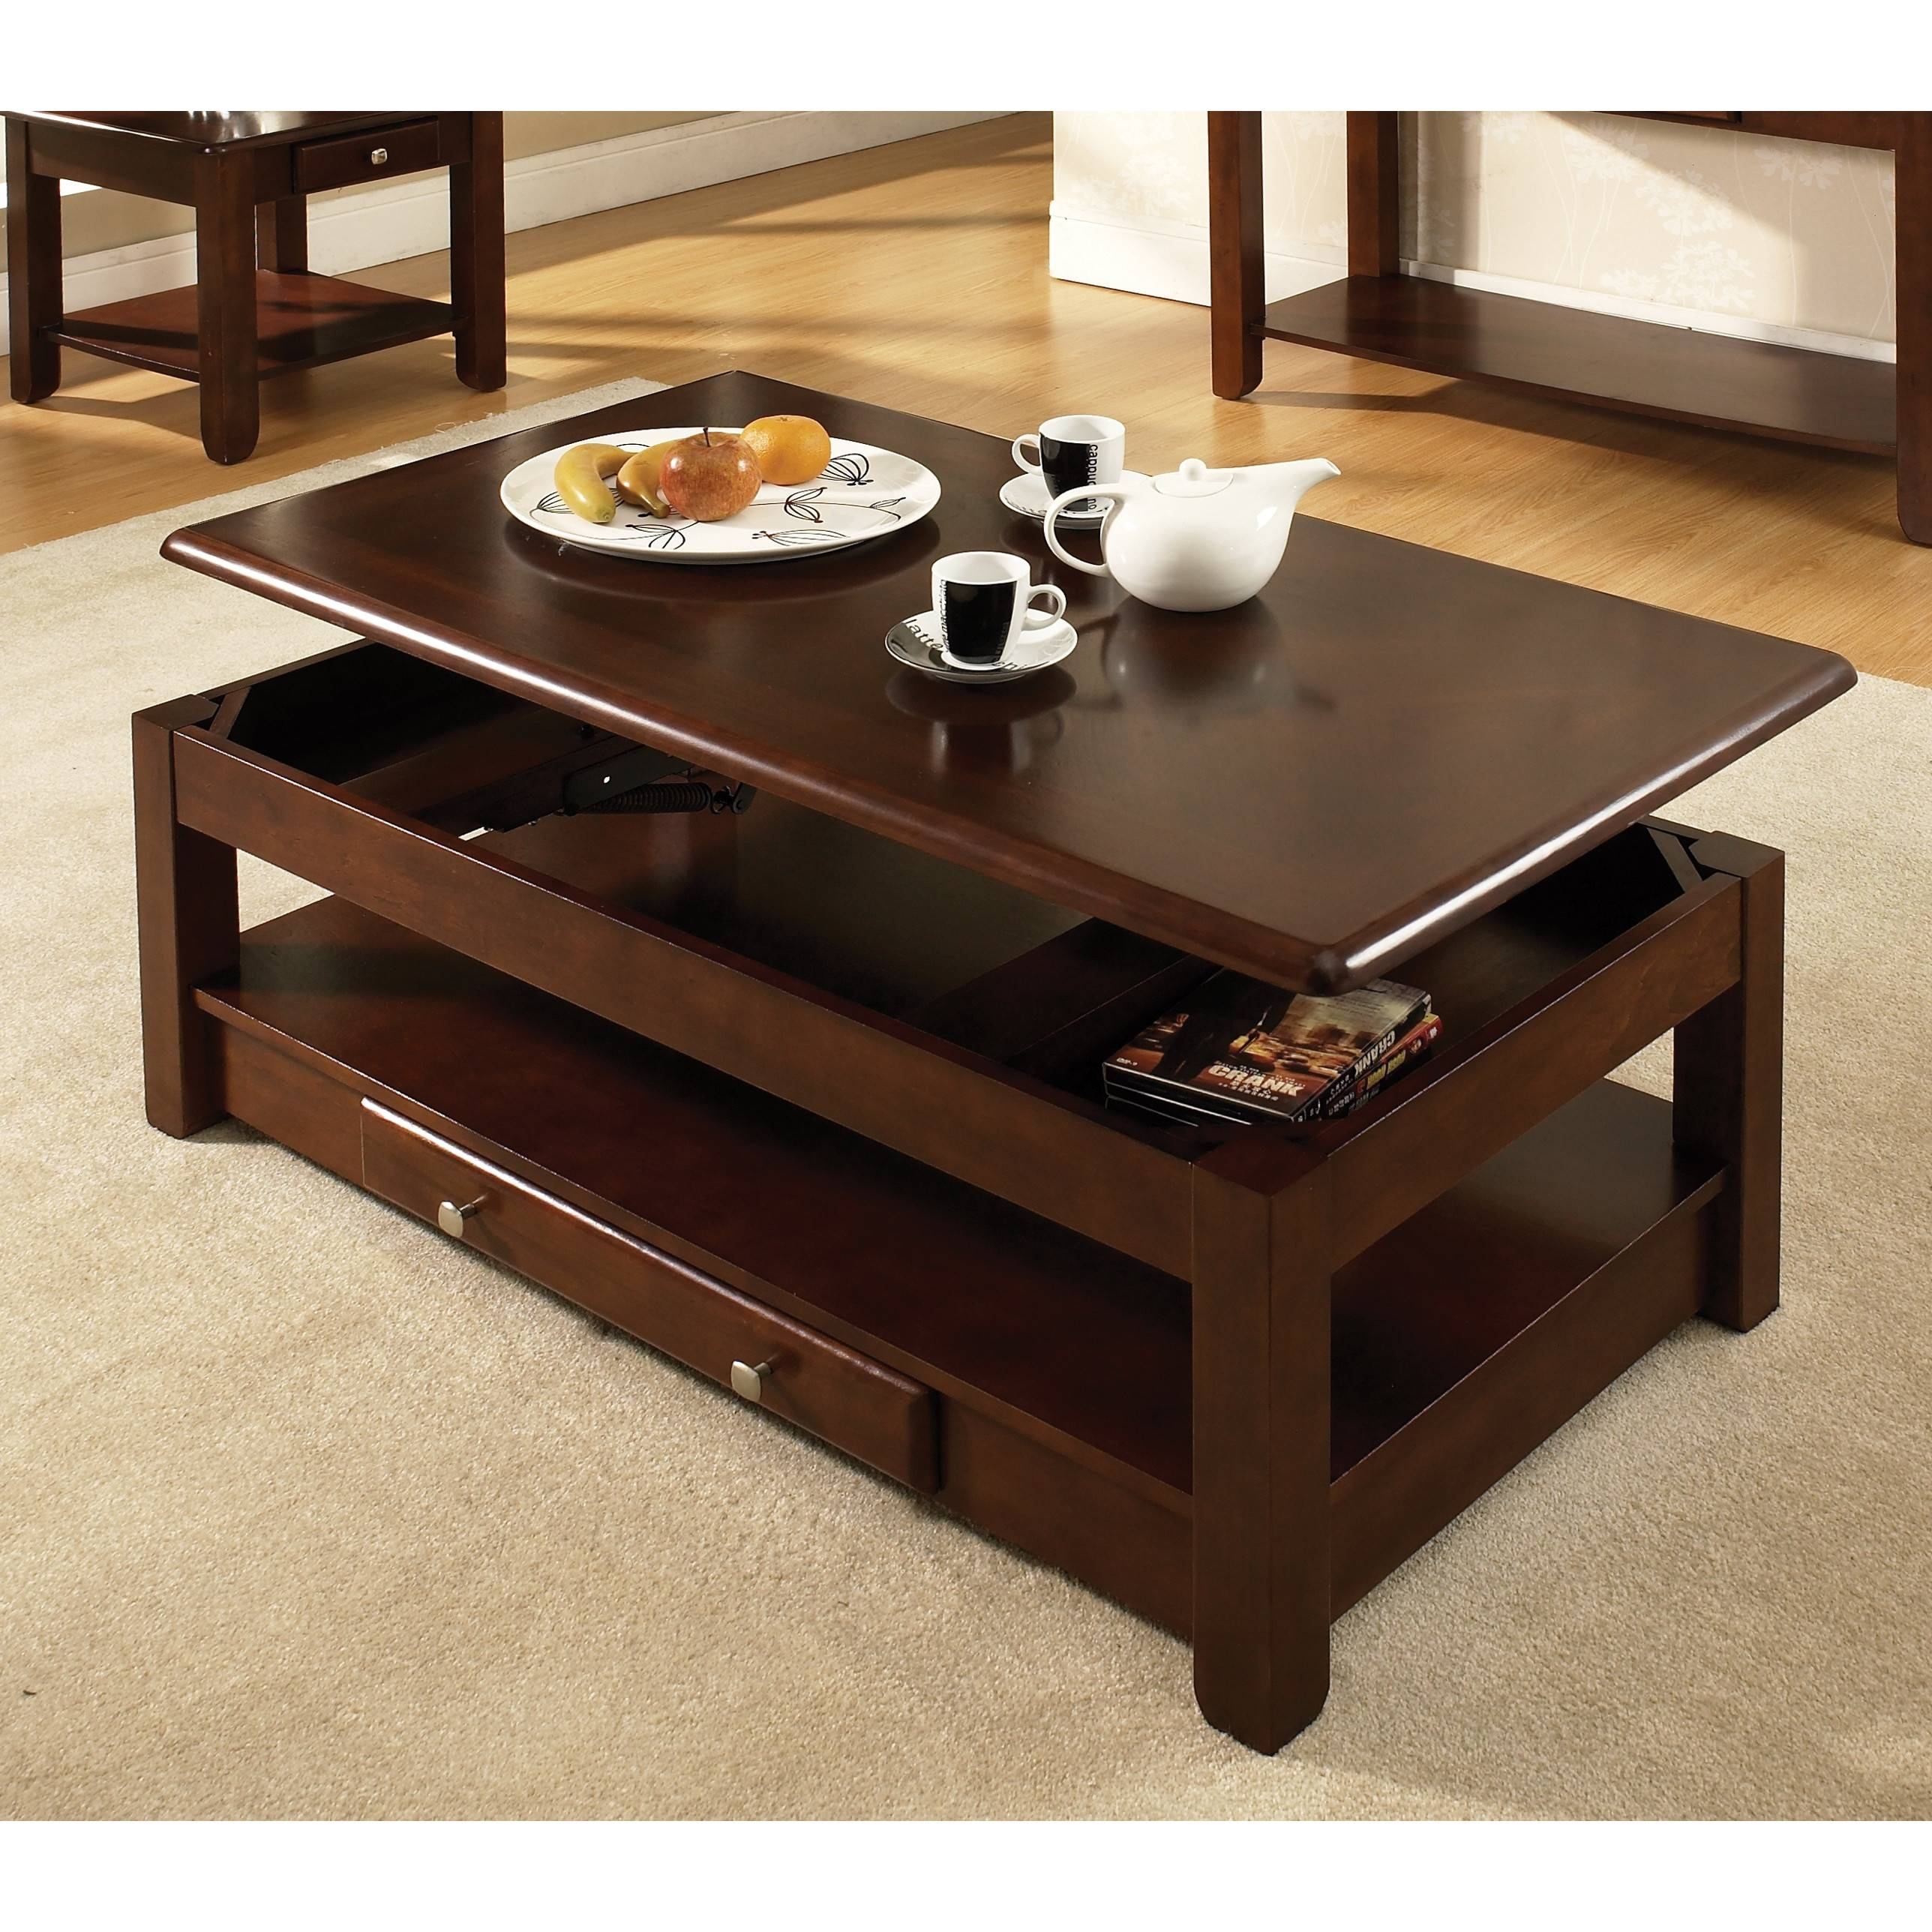 Swing Top Coffee Tables | Coffee Tables Decoration intended for Lifting Coffee Tables (Image 26 of 30)